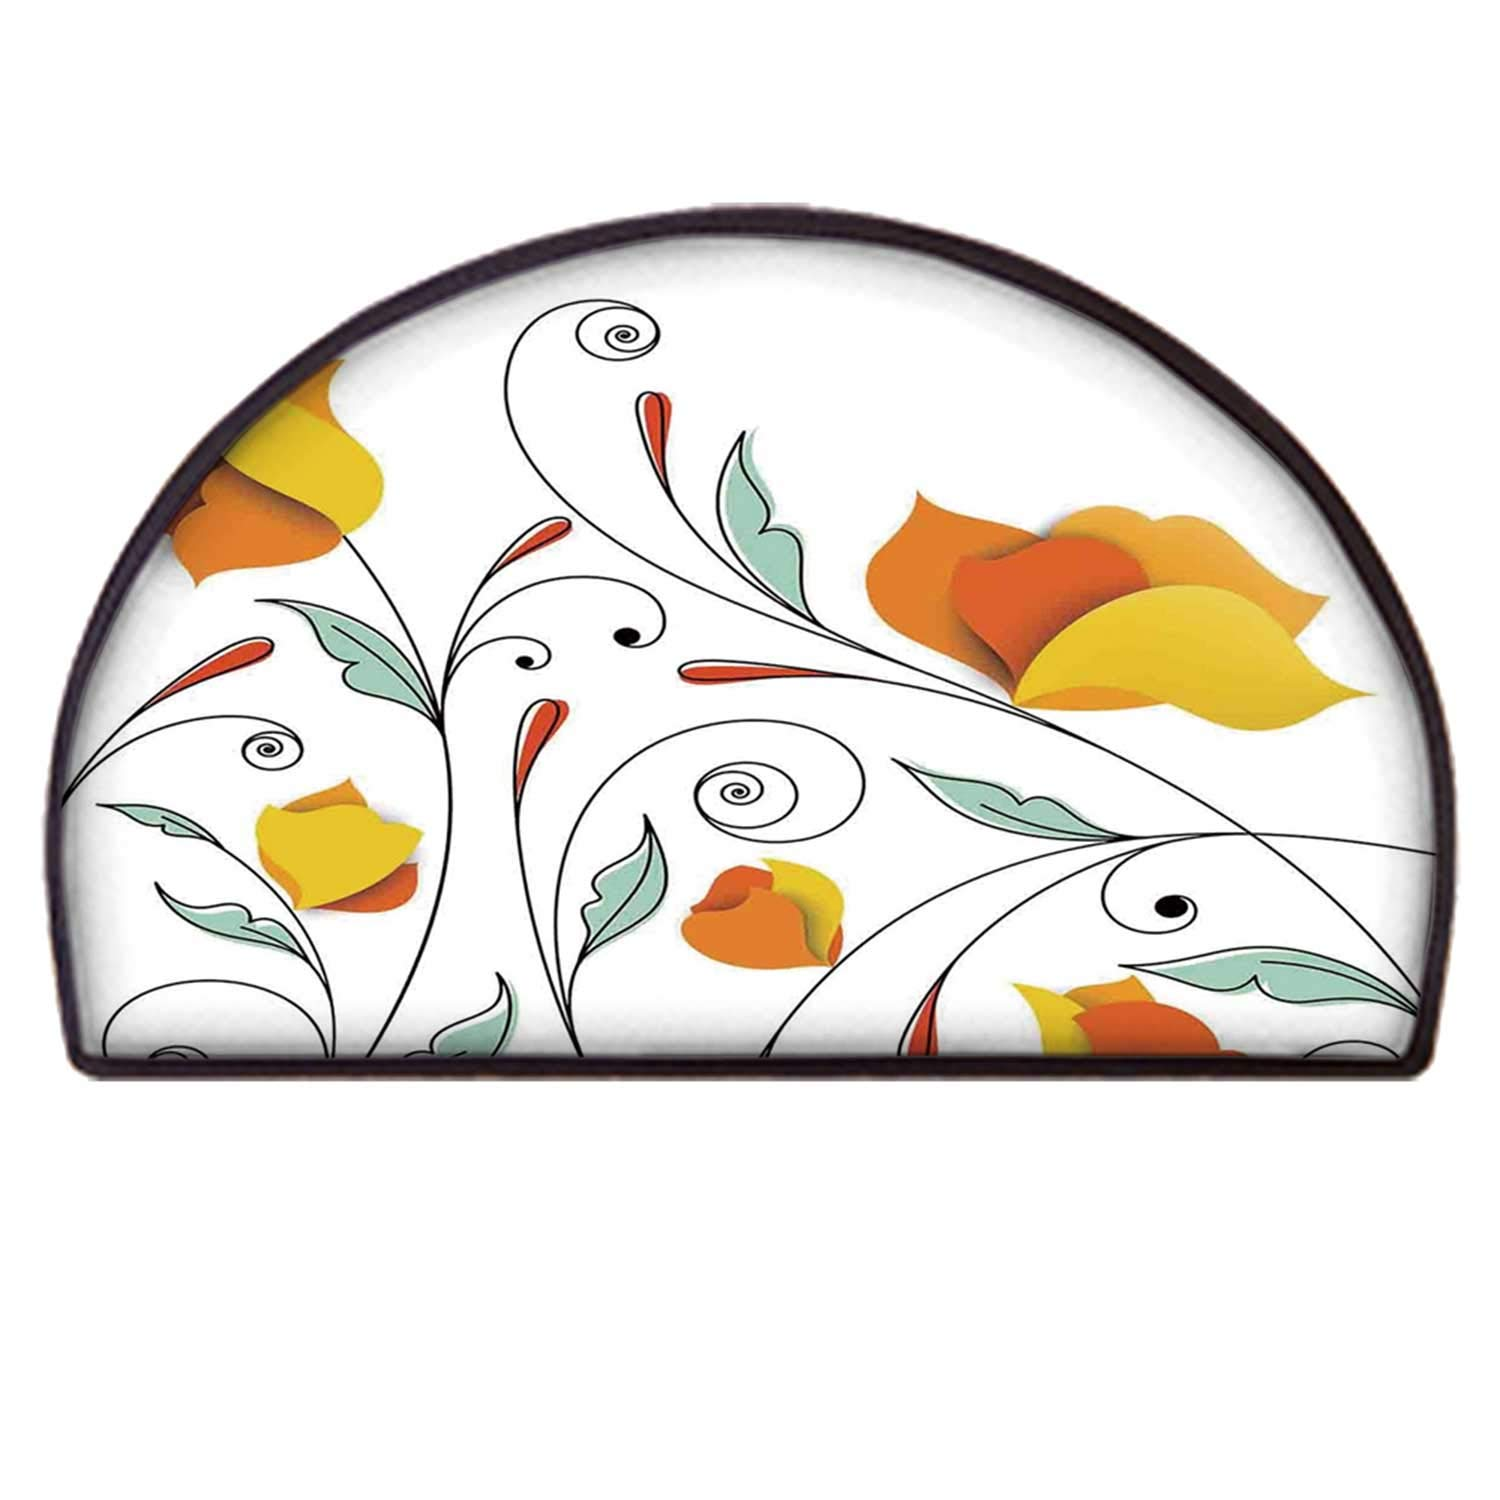 C COABALLA Floral Practical Semicircle Mat,Bouquet with Swirled Branches Romantic Paper Flowers Origami Autumn Blooms Image for Back Door,100 x 200cm / 39.37 x 78.74 inch by C COABALLA